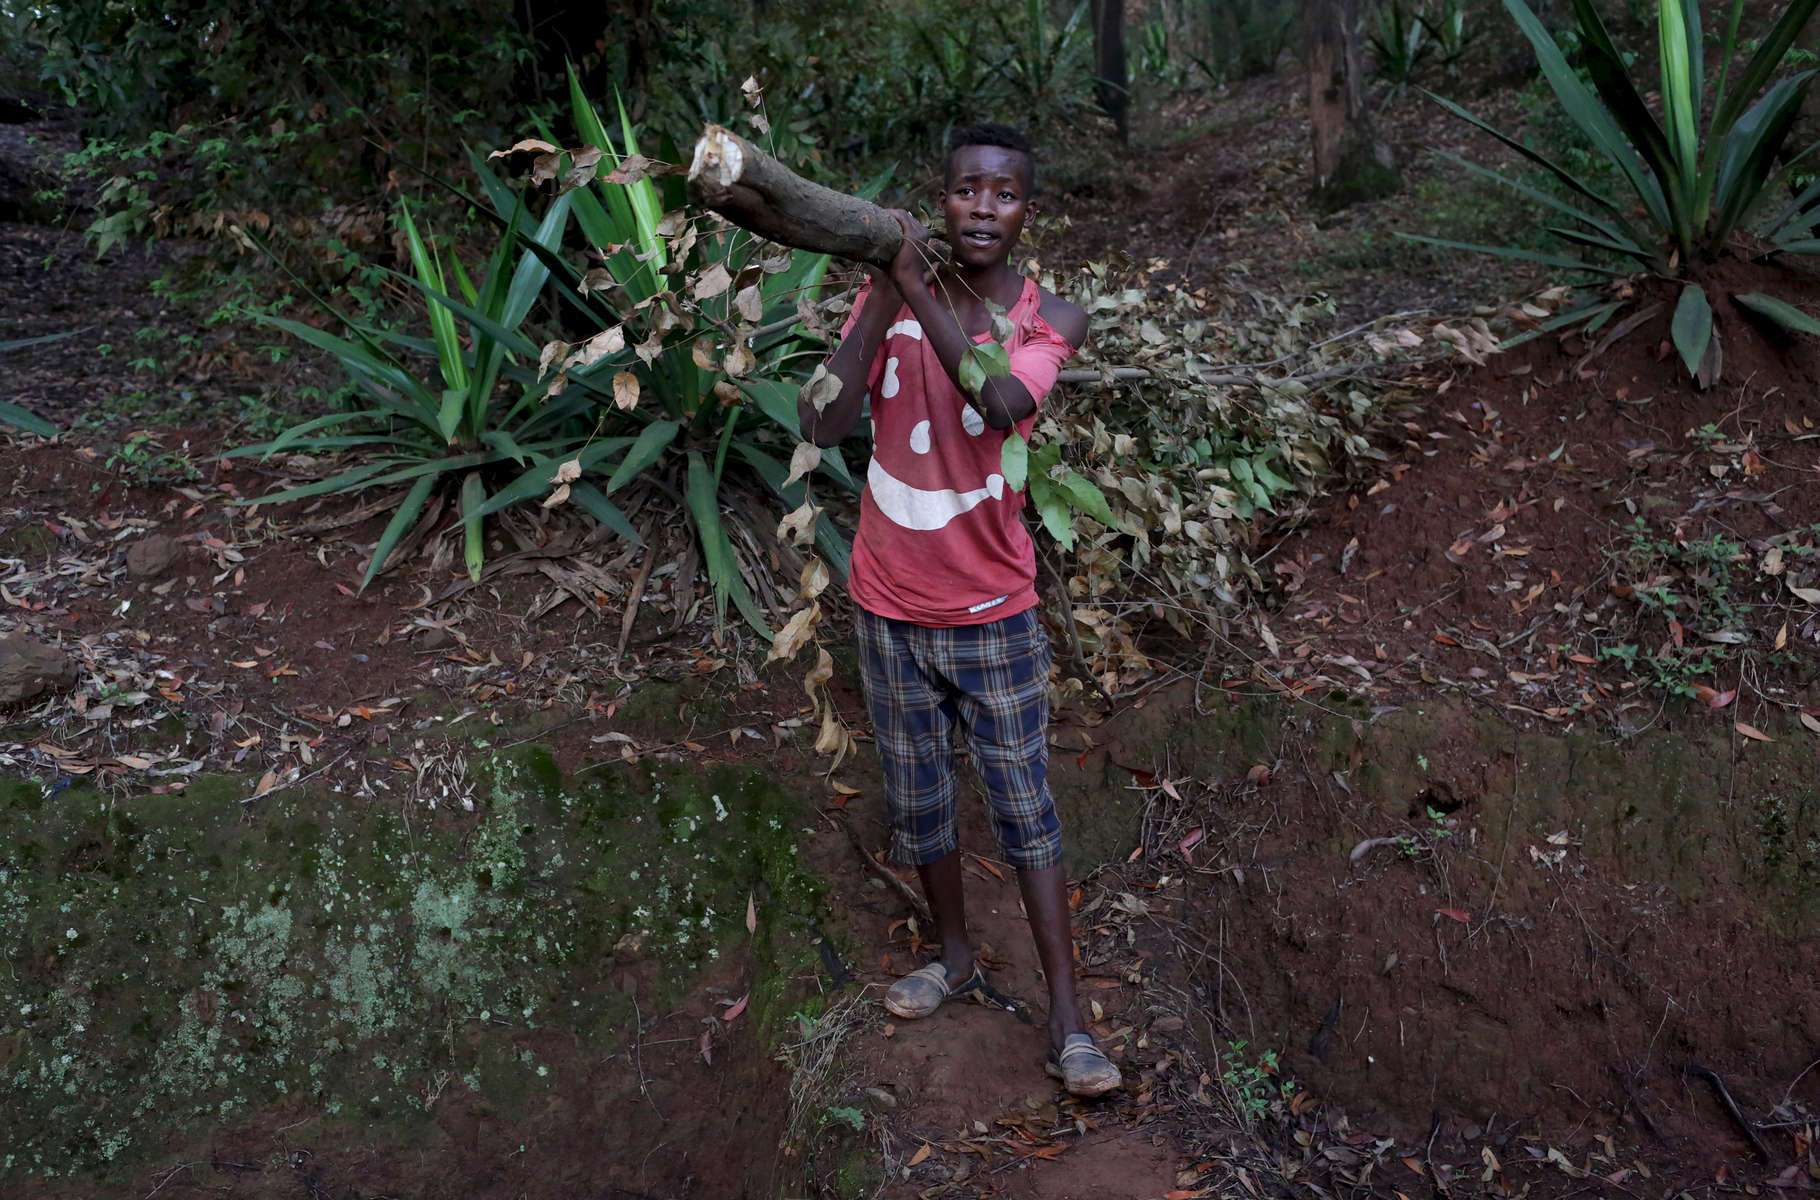 Gakuru Yassin, 21, carries a branch found in the forest to be used as wood for cooking on November 13, 2017 in Mount Kigali, Rwanda. Nearly half of all Rwandans live in poverty, relying on small-scale farming for survival without gas or electricity. With so many women and children spending hours of the day foraging for wood used for cooking and light, often damaging their eyes, lungs, the forests and atmosphere, a little inventiveness helps. Enter cow and enter pig — not just as a source of food, but also the heat needed to cook it. Or more specifically, their poo — the fuel fed to a biogas digester, a tank that coverts organic waste into methane. Photographs by: Yana Paskova